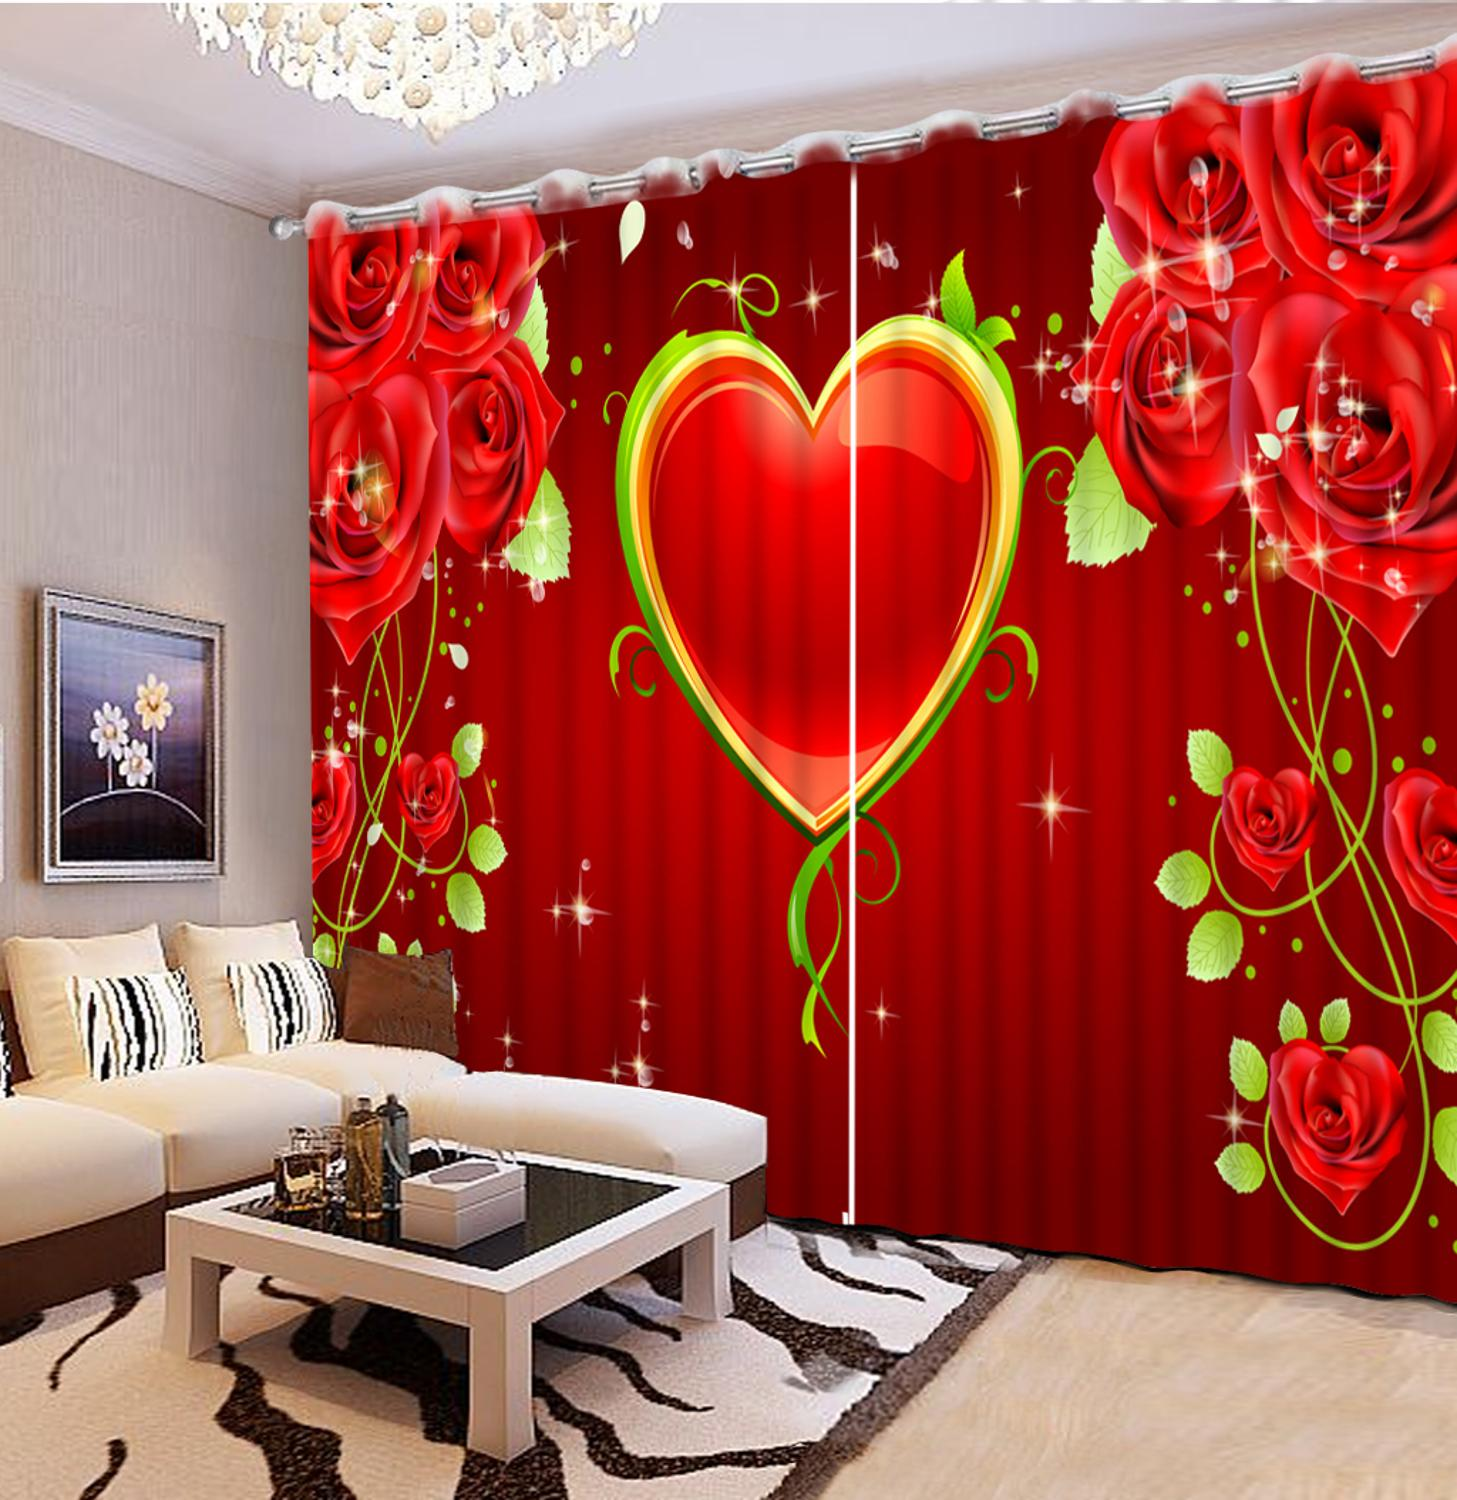 Home Wndows Customize 3D Window Curtains For Living Room Bedroom Wedding decoration Rose love modern curtainsHome Wndows Customize 3D Window Curtains For Living Room Bedroom Wedding decoration Rose love modern curtains